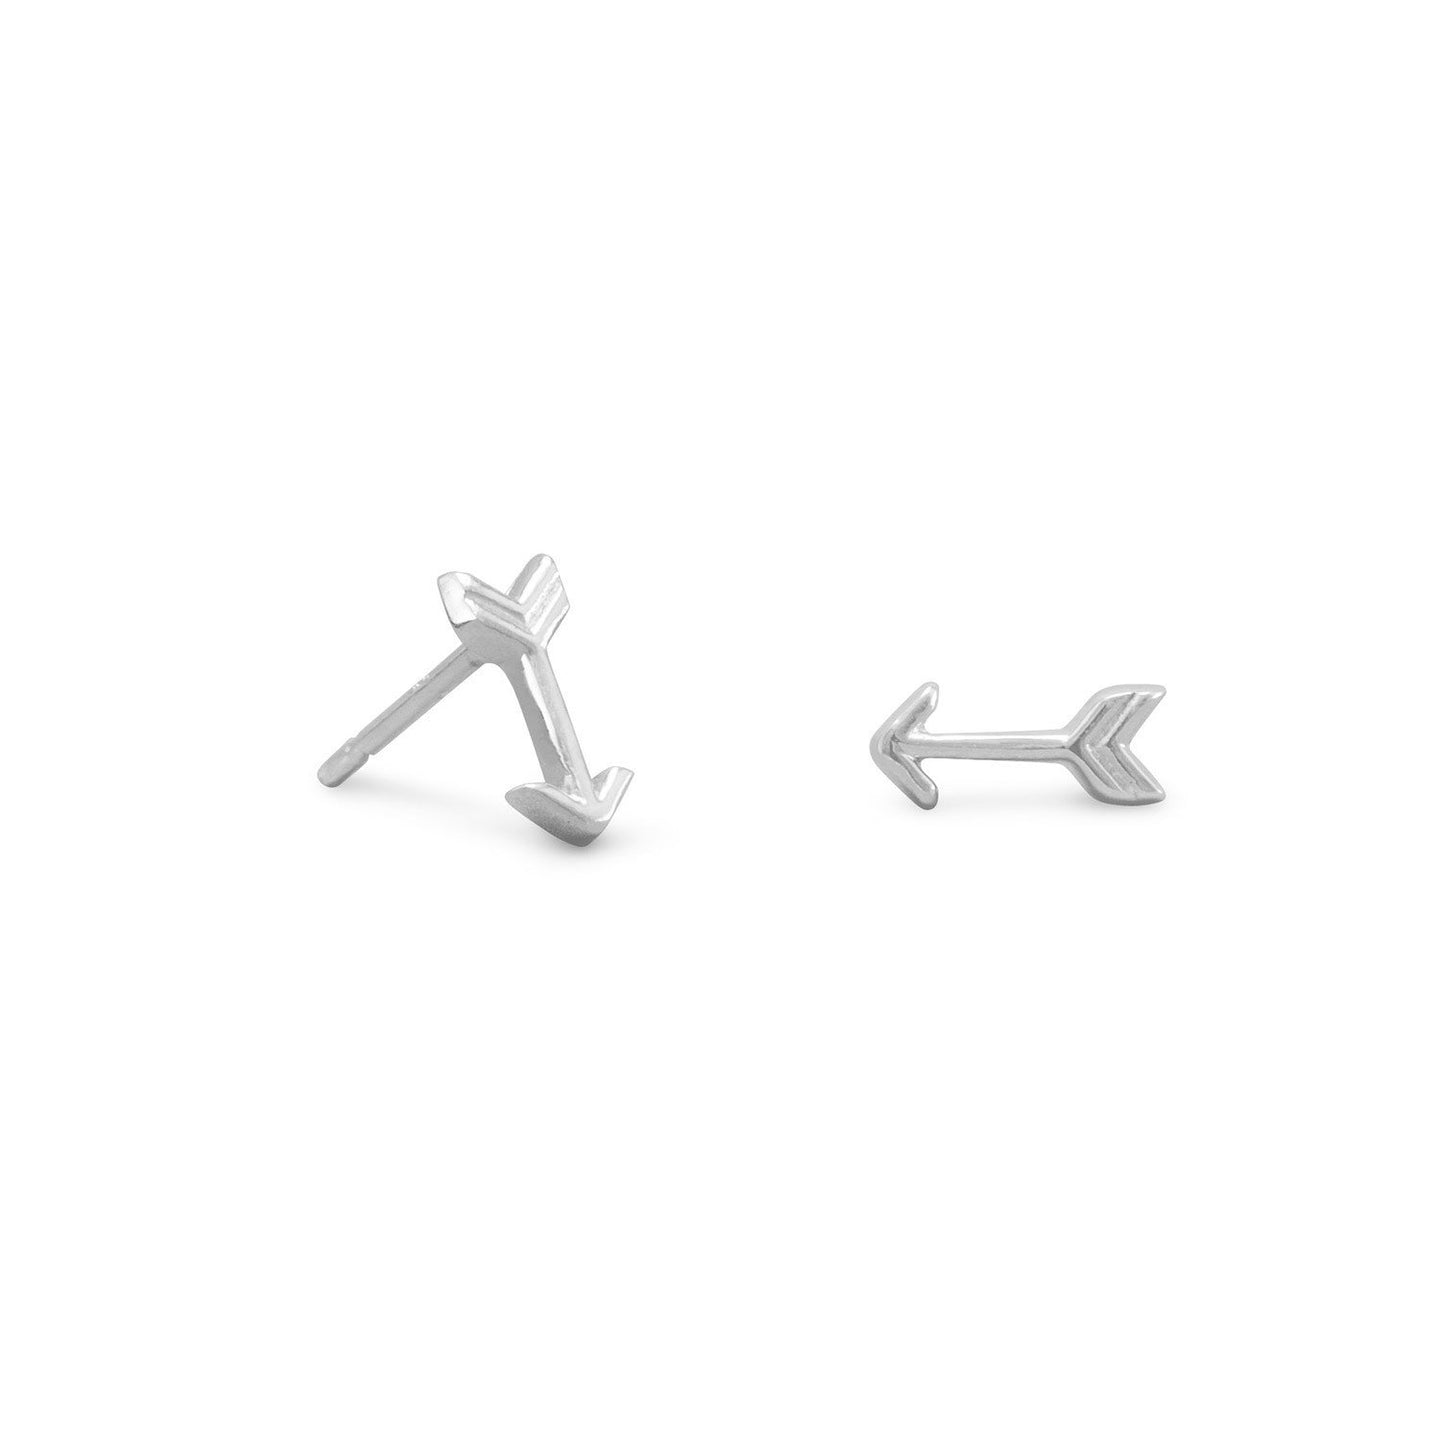 Rhodium Plated Small Arrow Earrings - the-southern-magnolia-too